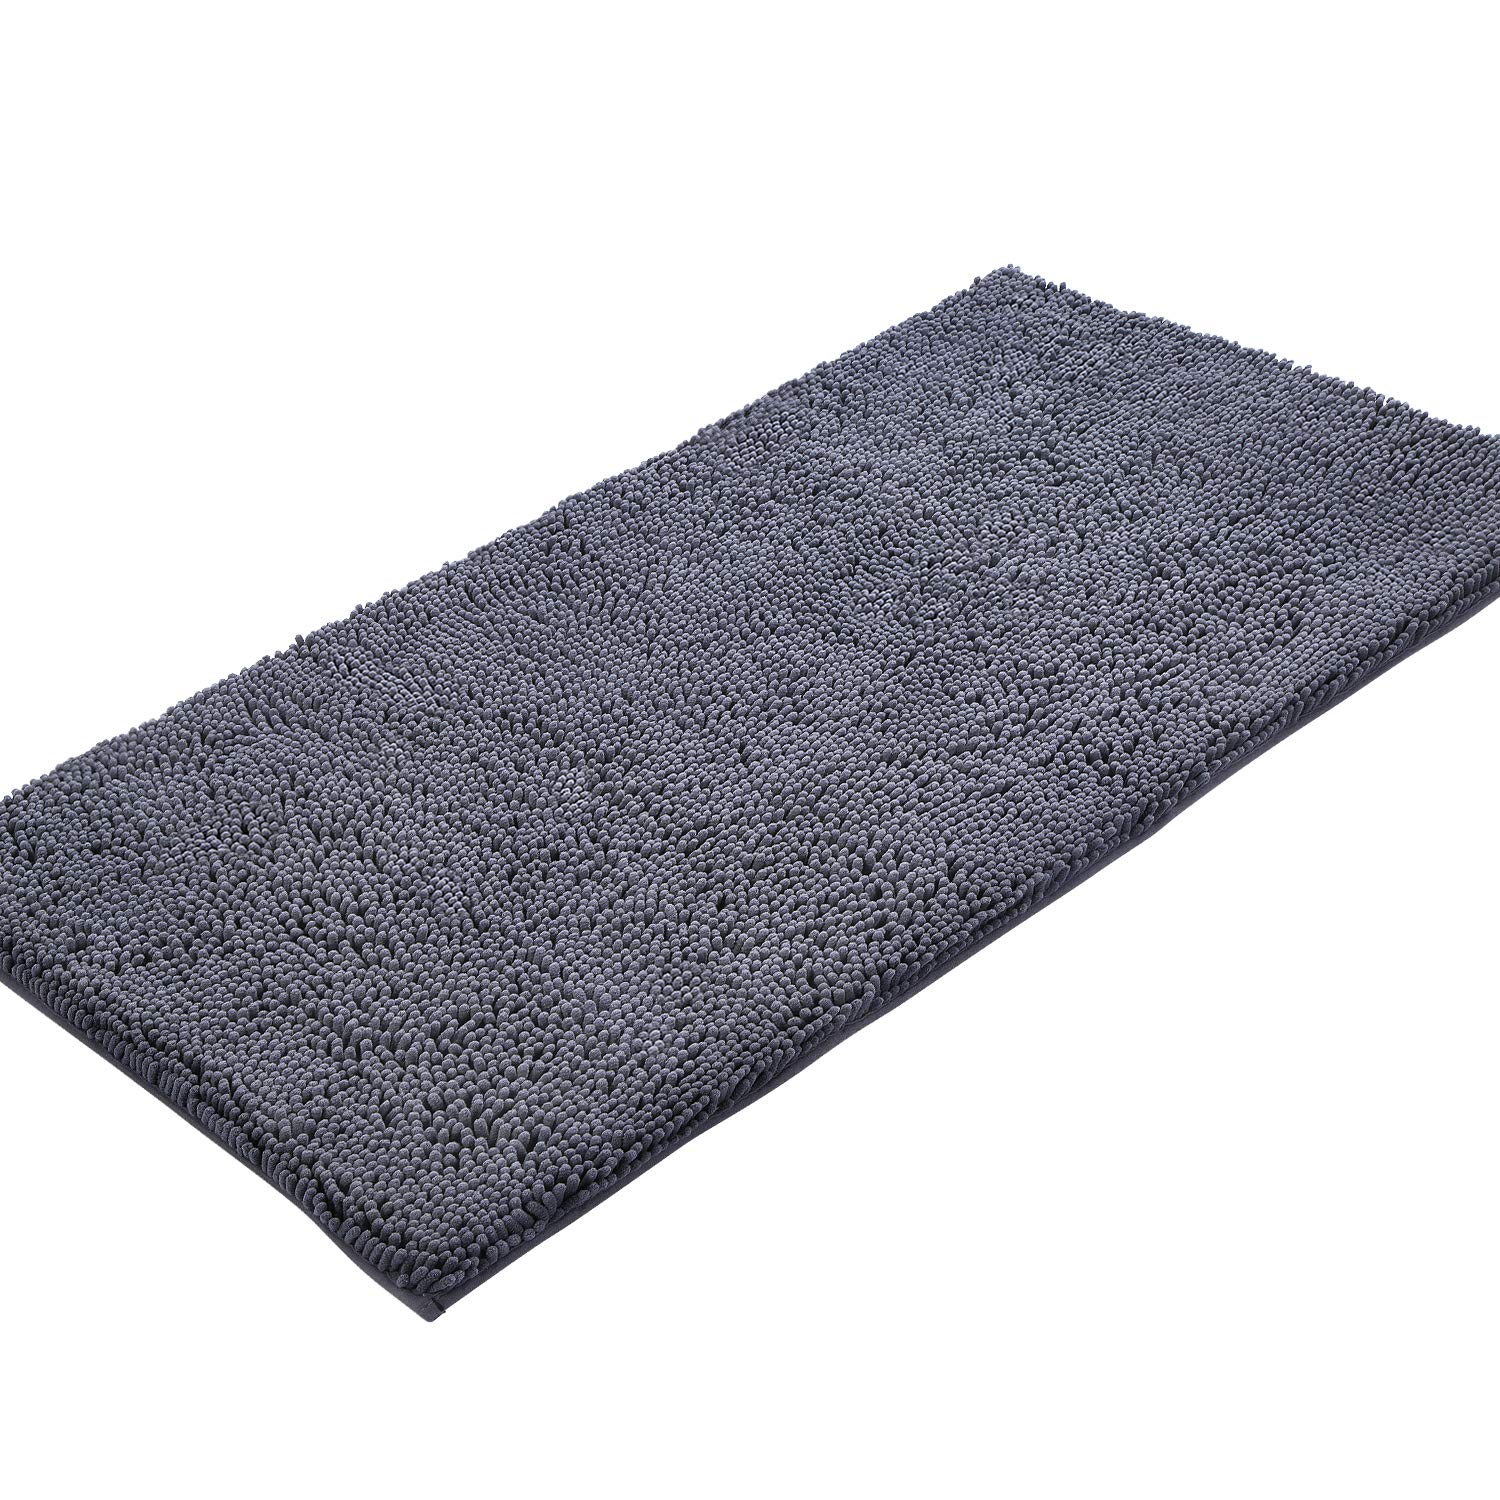 KMAT Bath Mat for Bathroom, 47''x 28'' Chenille Bathroom Rug Machine-Washable Extra Soft and Absorbent Large Long Bathmat Shaggy Bath Rug, Non-Slip and Non-Shedding Bathroom Floor Mat Shower Rug (Grey)